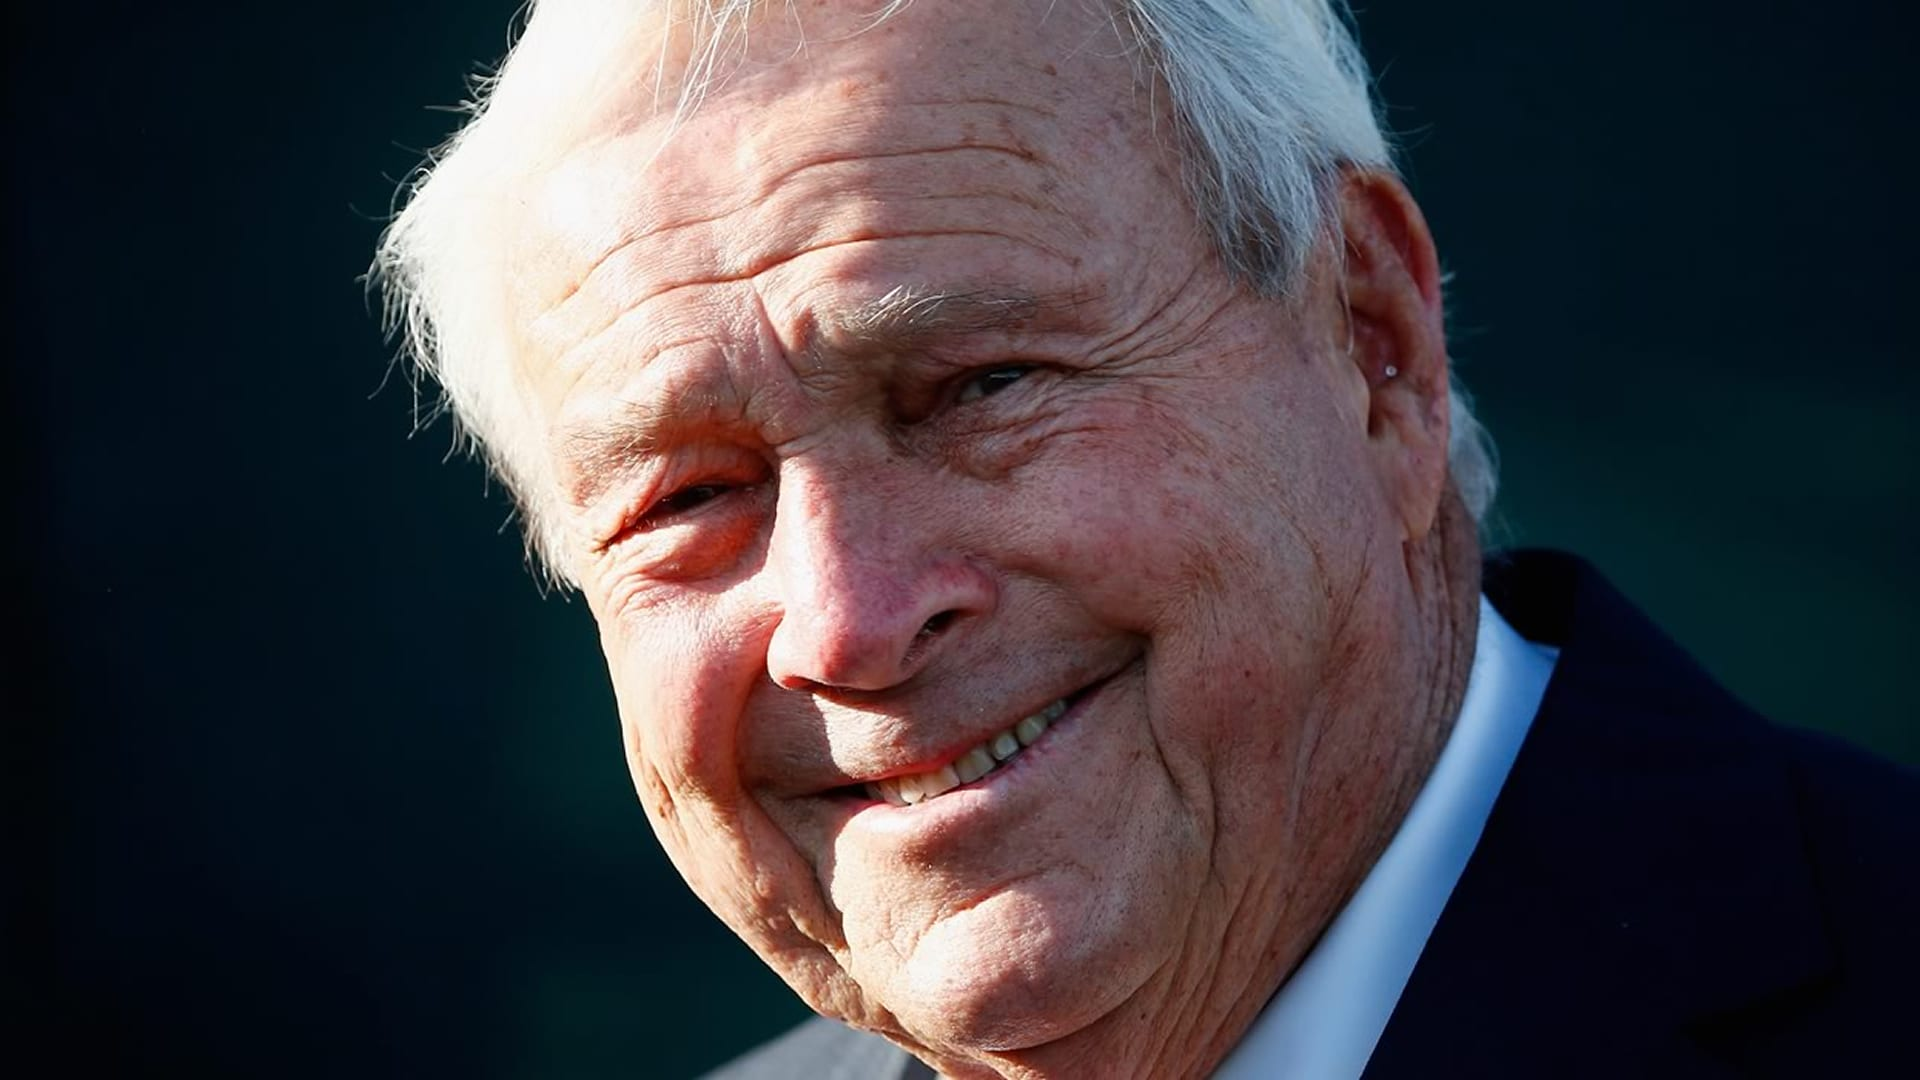 Arnie: Arnold Palmer Timeline Through the Decades | Golf Channel